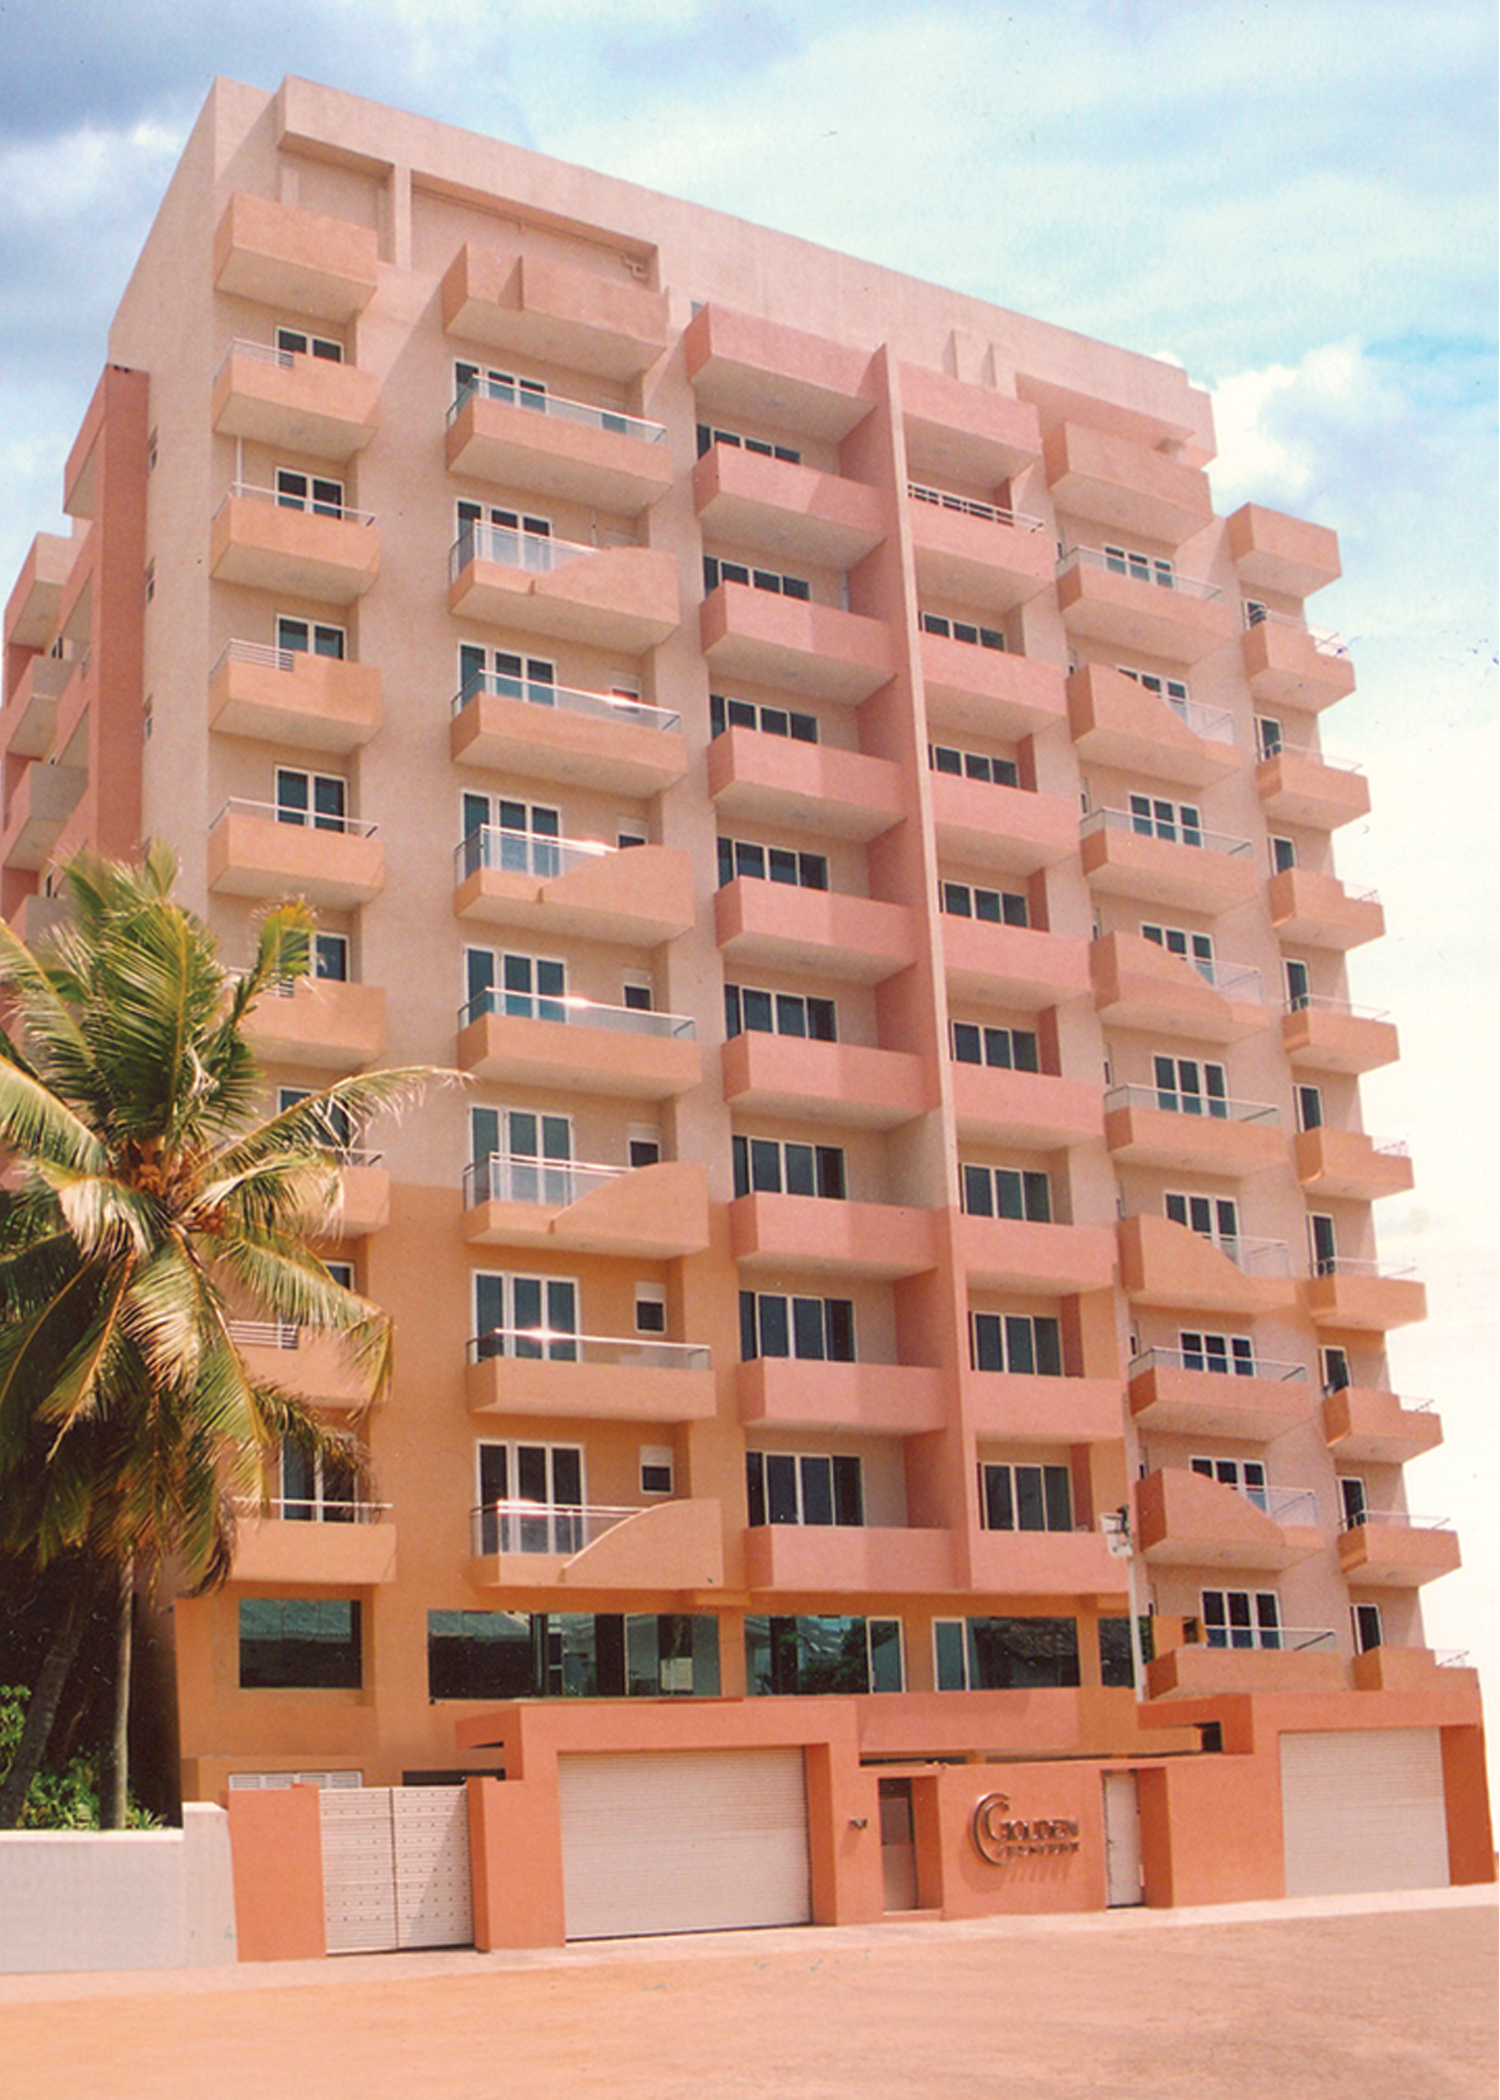 GOLDEN CRESENT APARTMENT COMPLEX AT 123, NEW CHETTY STREET, COLOMBO13.